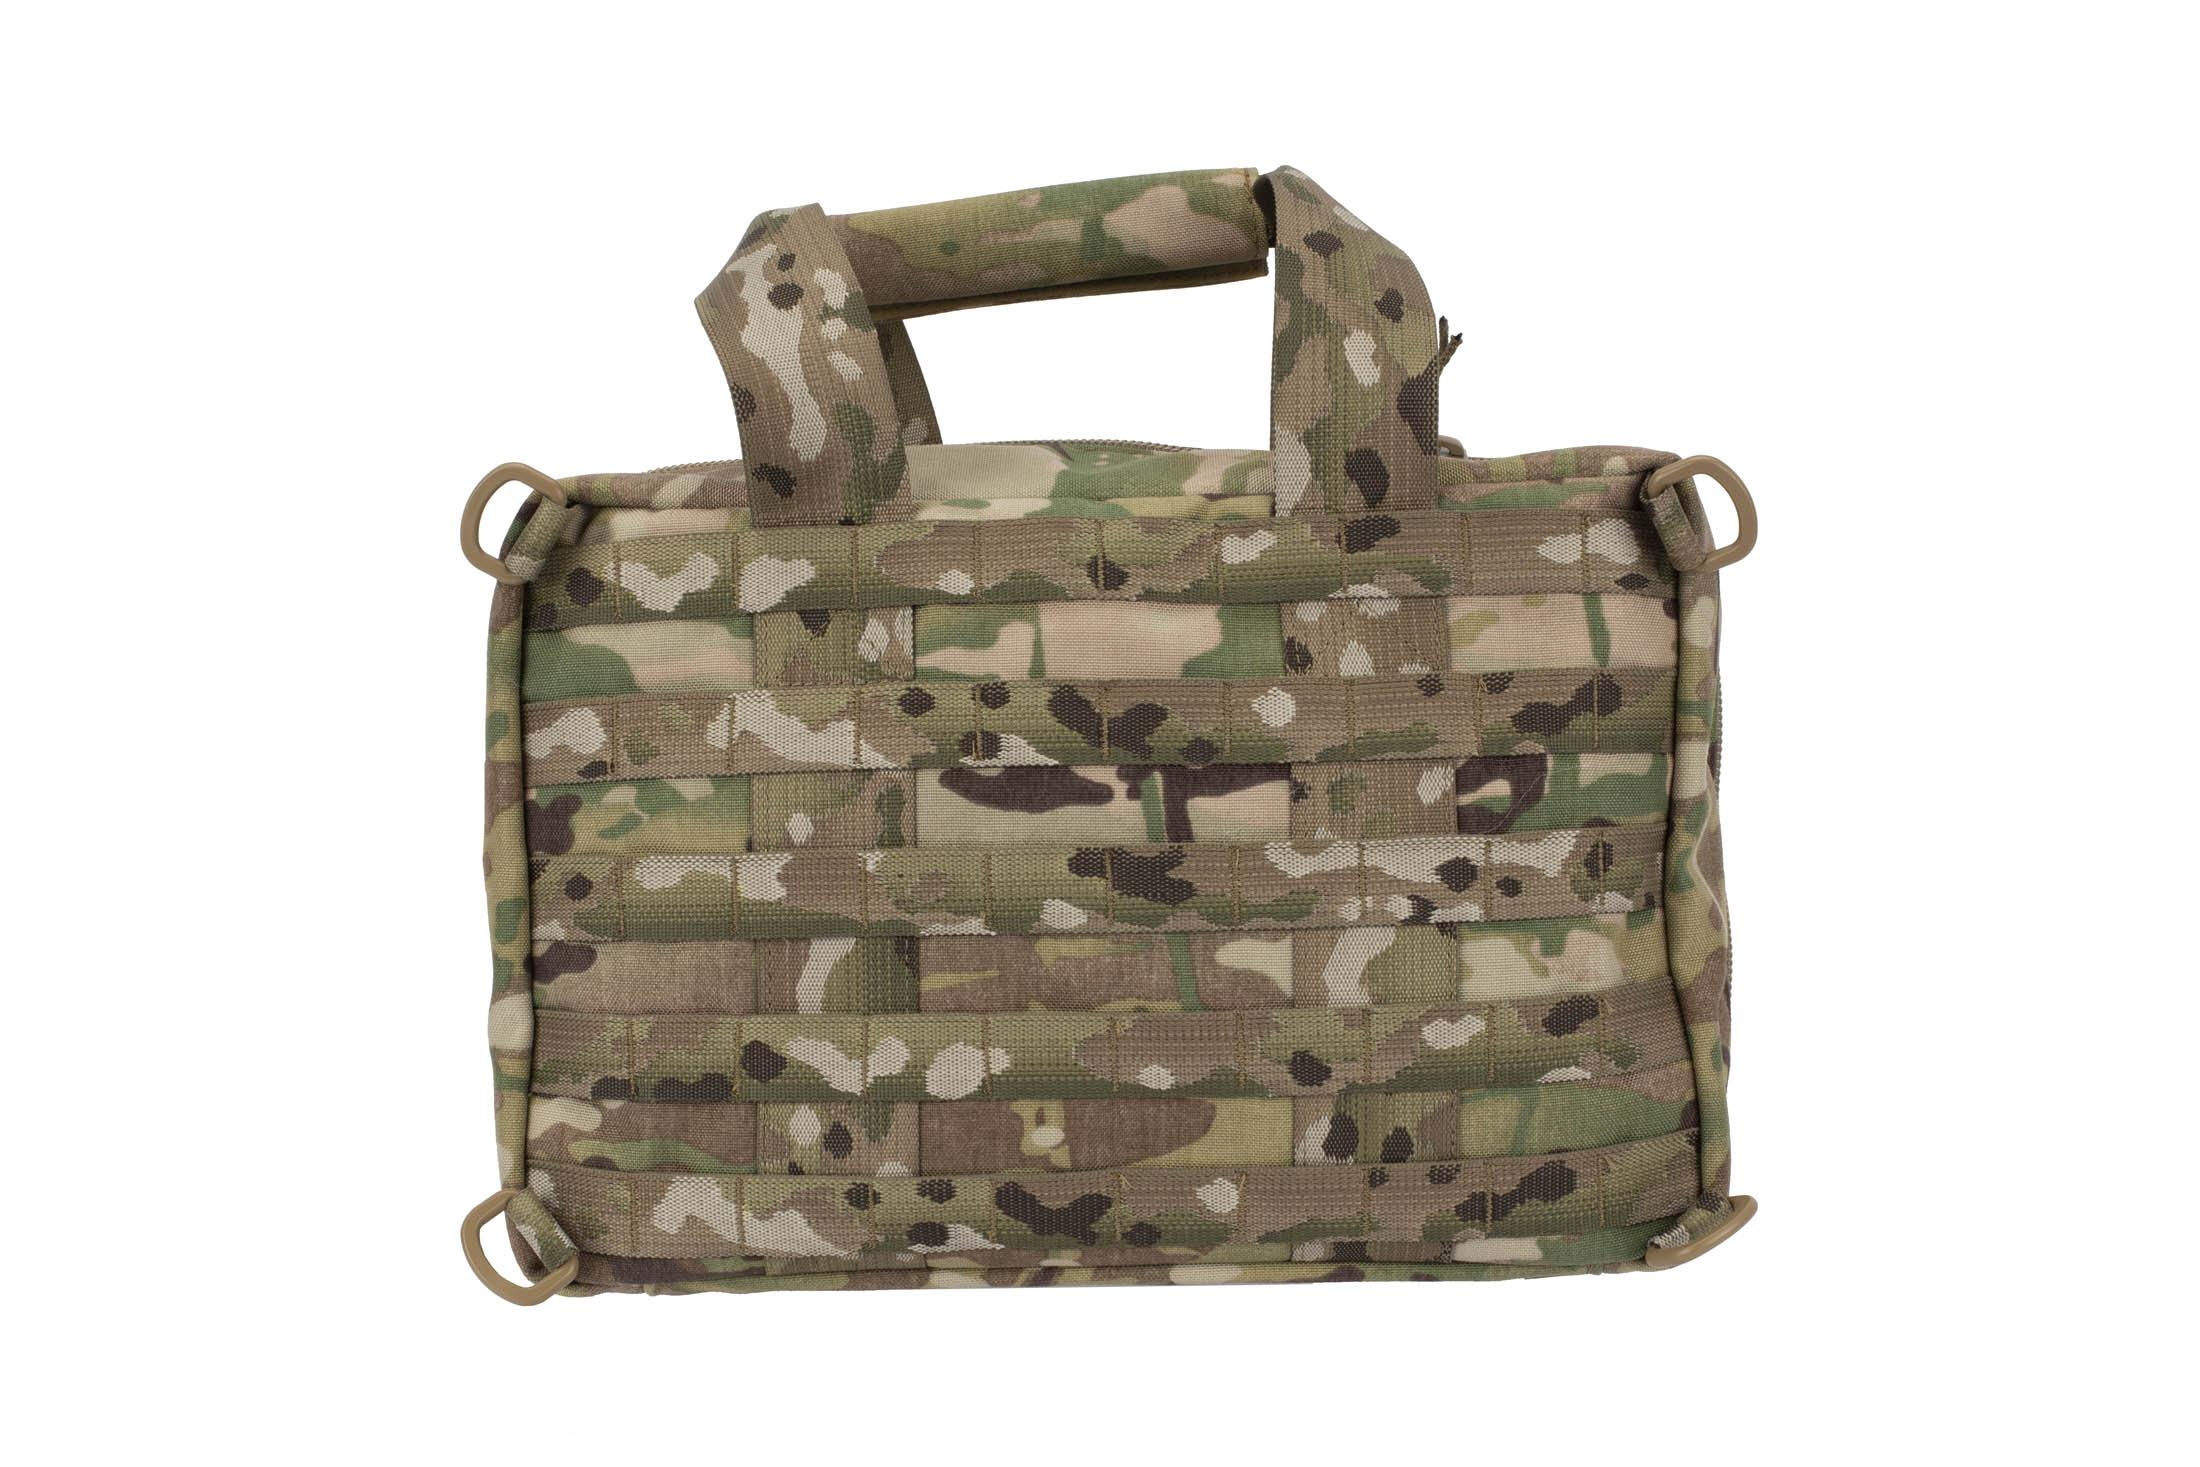 High Speed Gear MultiCam Range Bag features MOLLE 5 rows of MOLLE webbing on both sides for accessory attachment